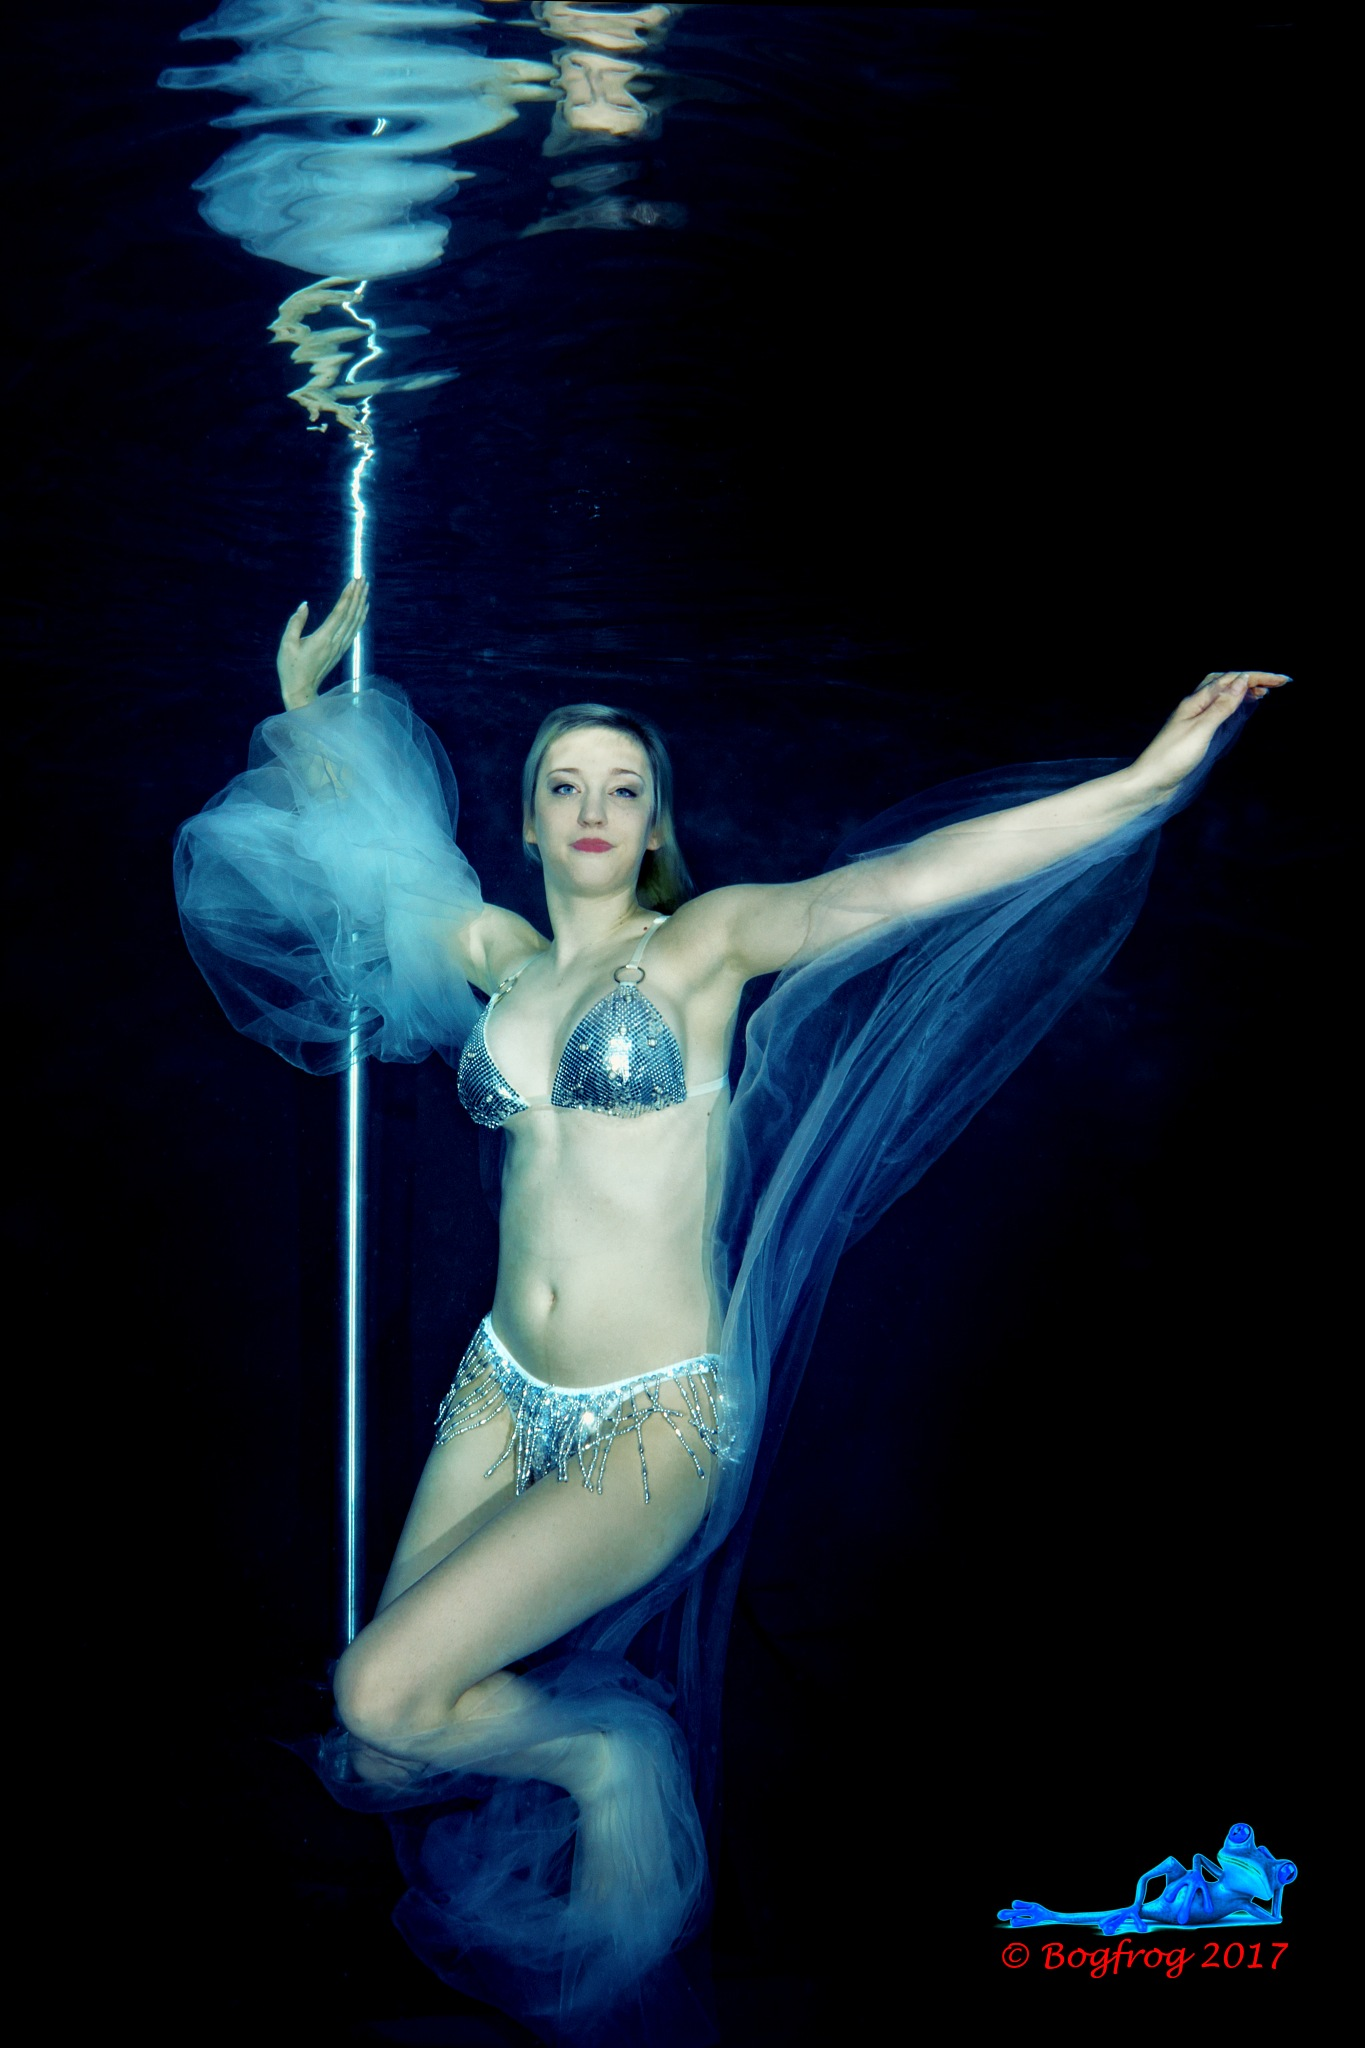 Underwater pole and fabric by Bogfrog